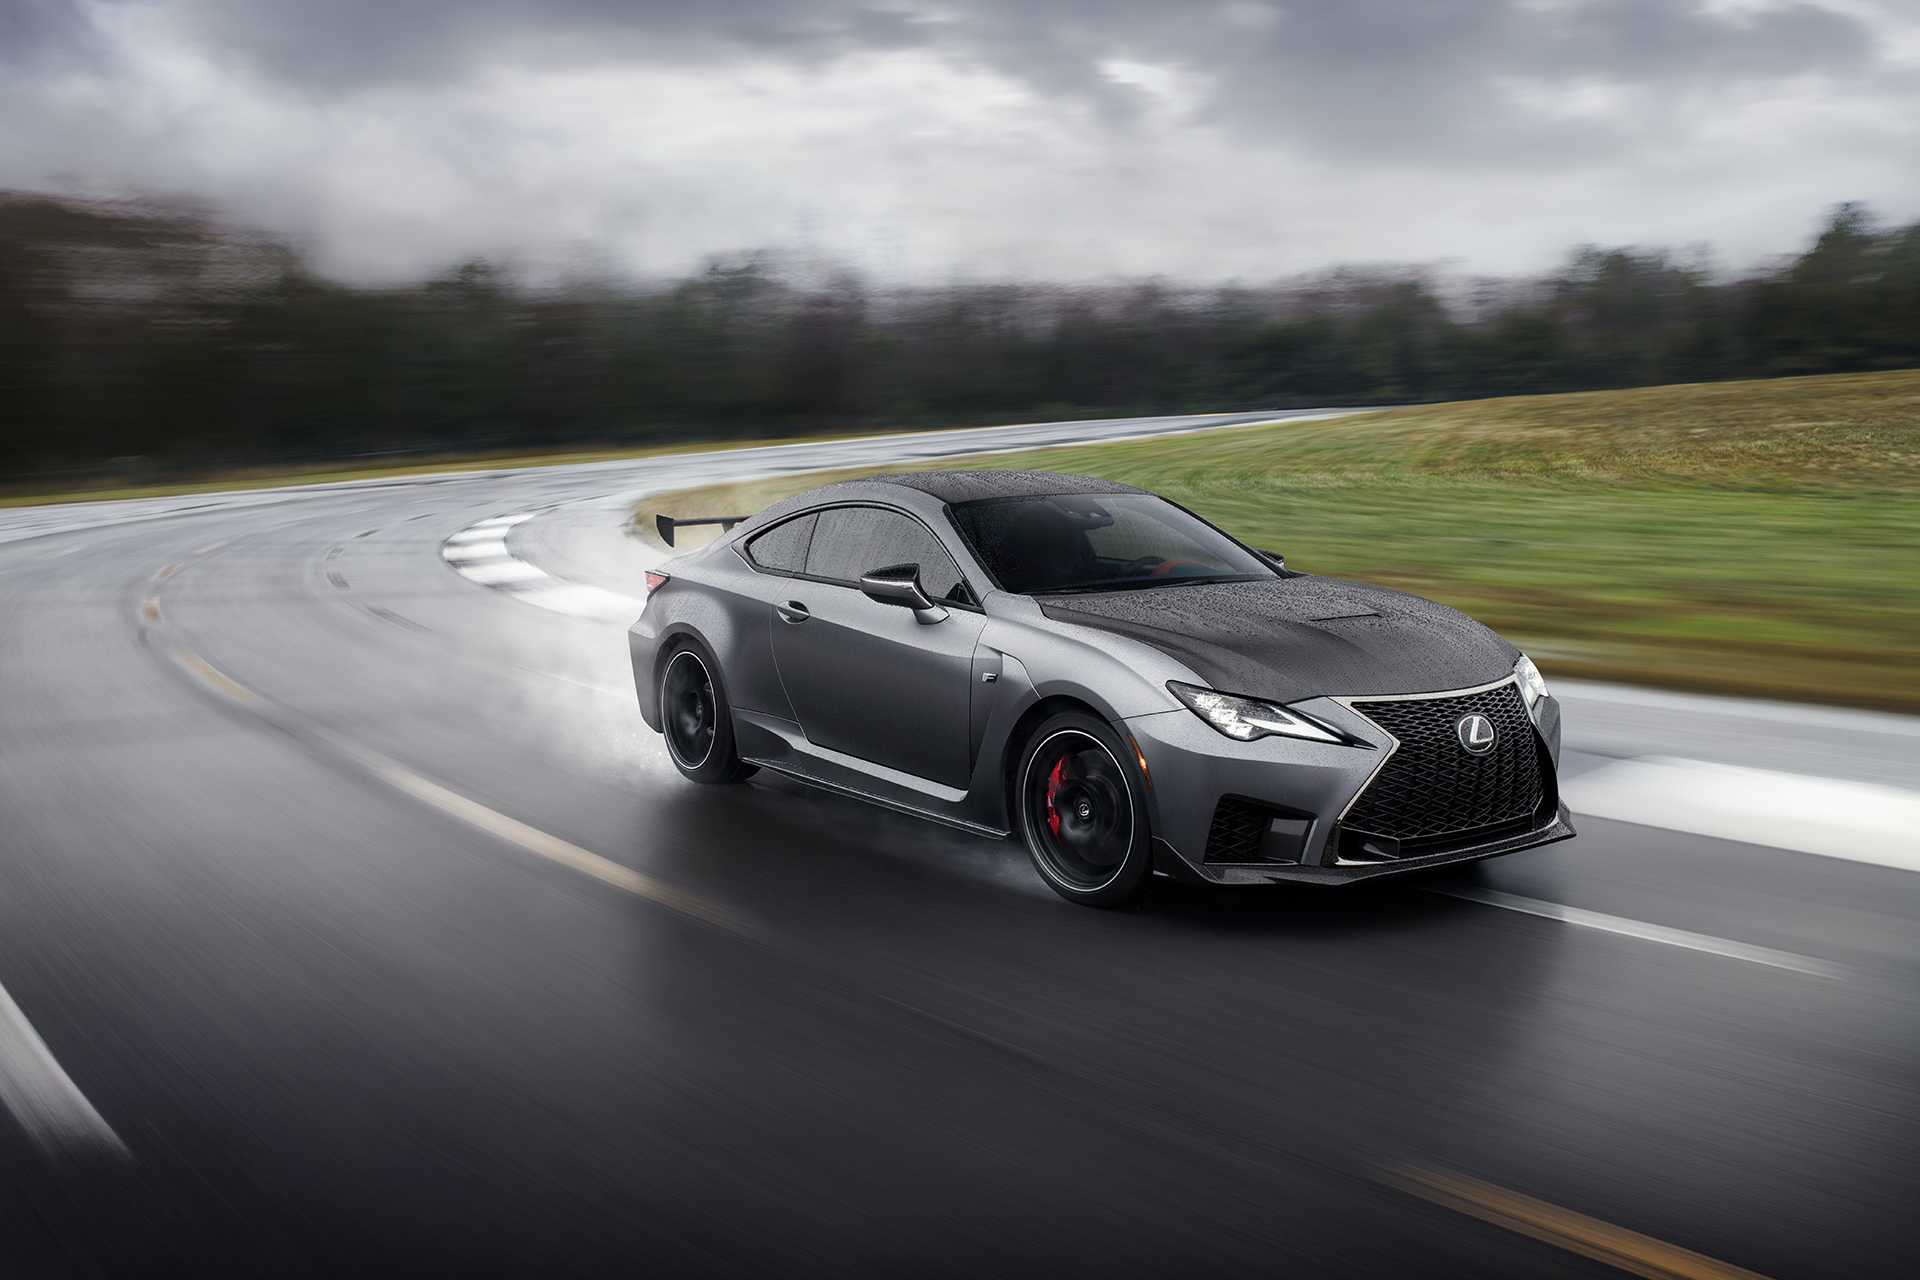 2020 lexus rc f and rc f track edition debut in detroit | lexus